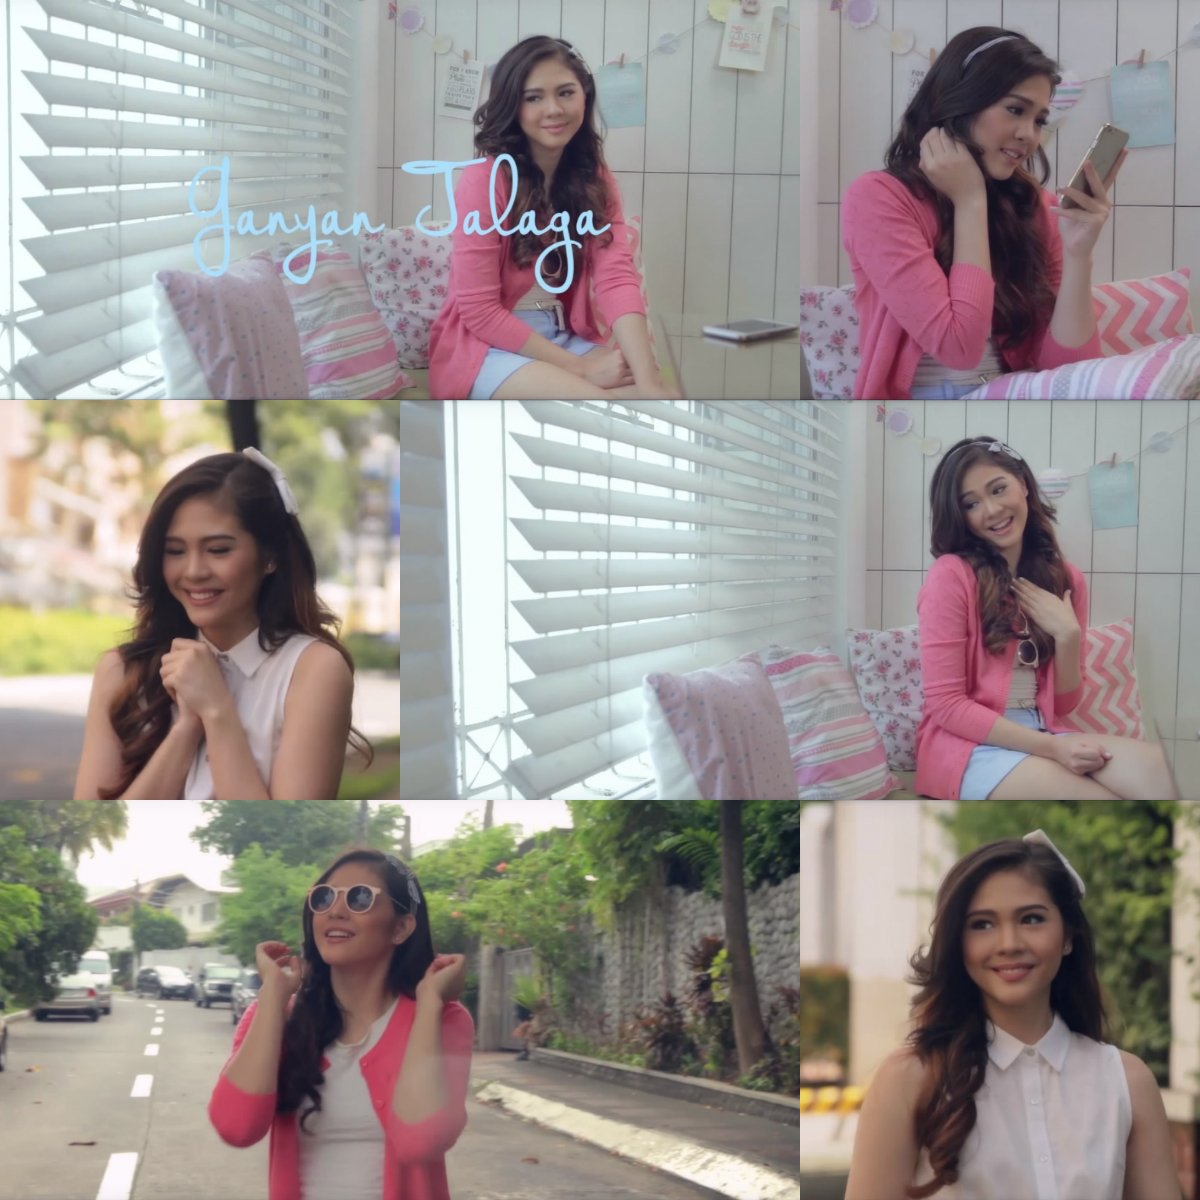 Girly and preppy! Yes, we're lovin' @superjanella's #LoveByBayo outfits in her Ganyan Talaga MV. <3 https://t.co/mpkjwv9nrS